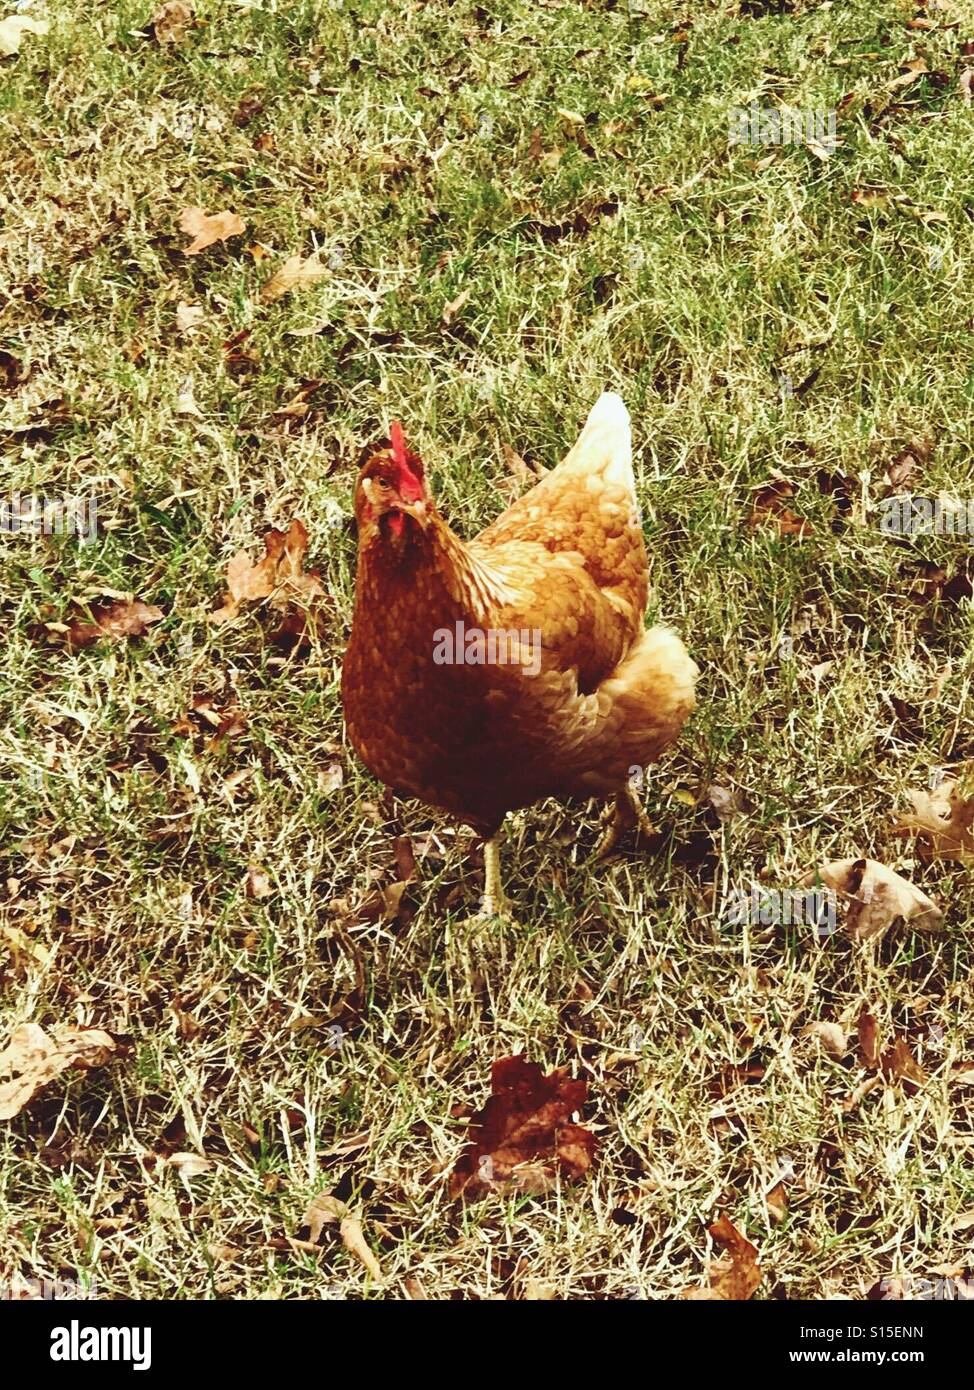 Poultry. Laying hen on small family farm - Stock Image